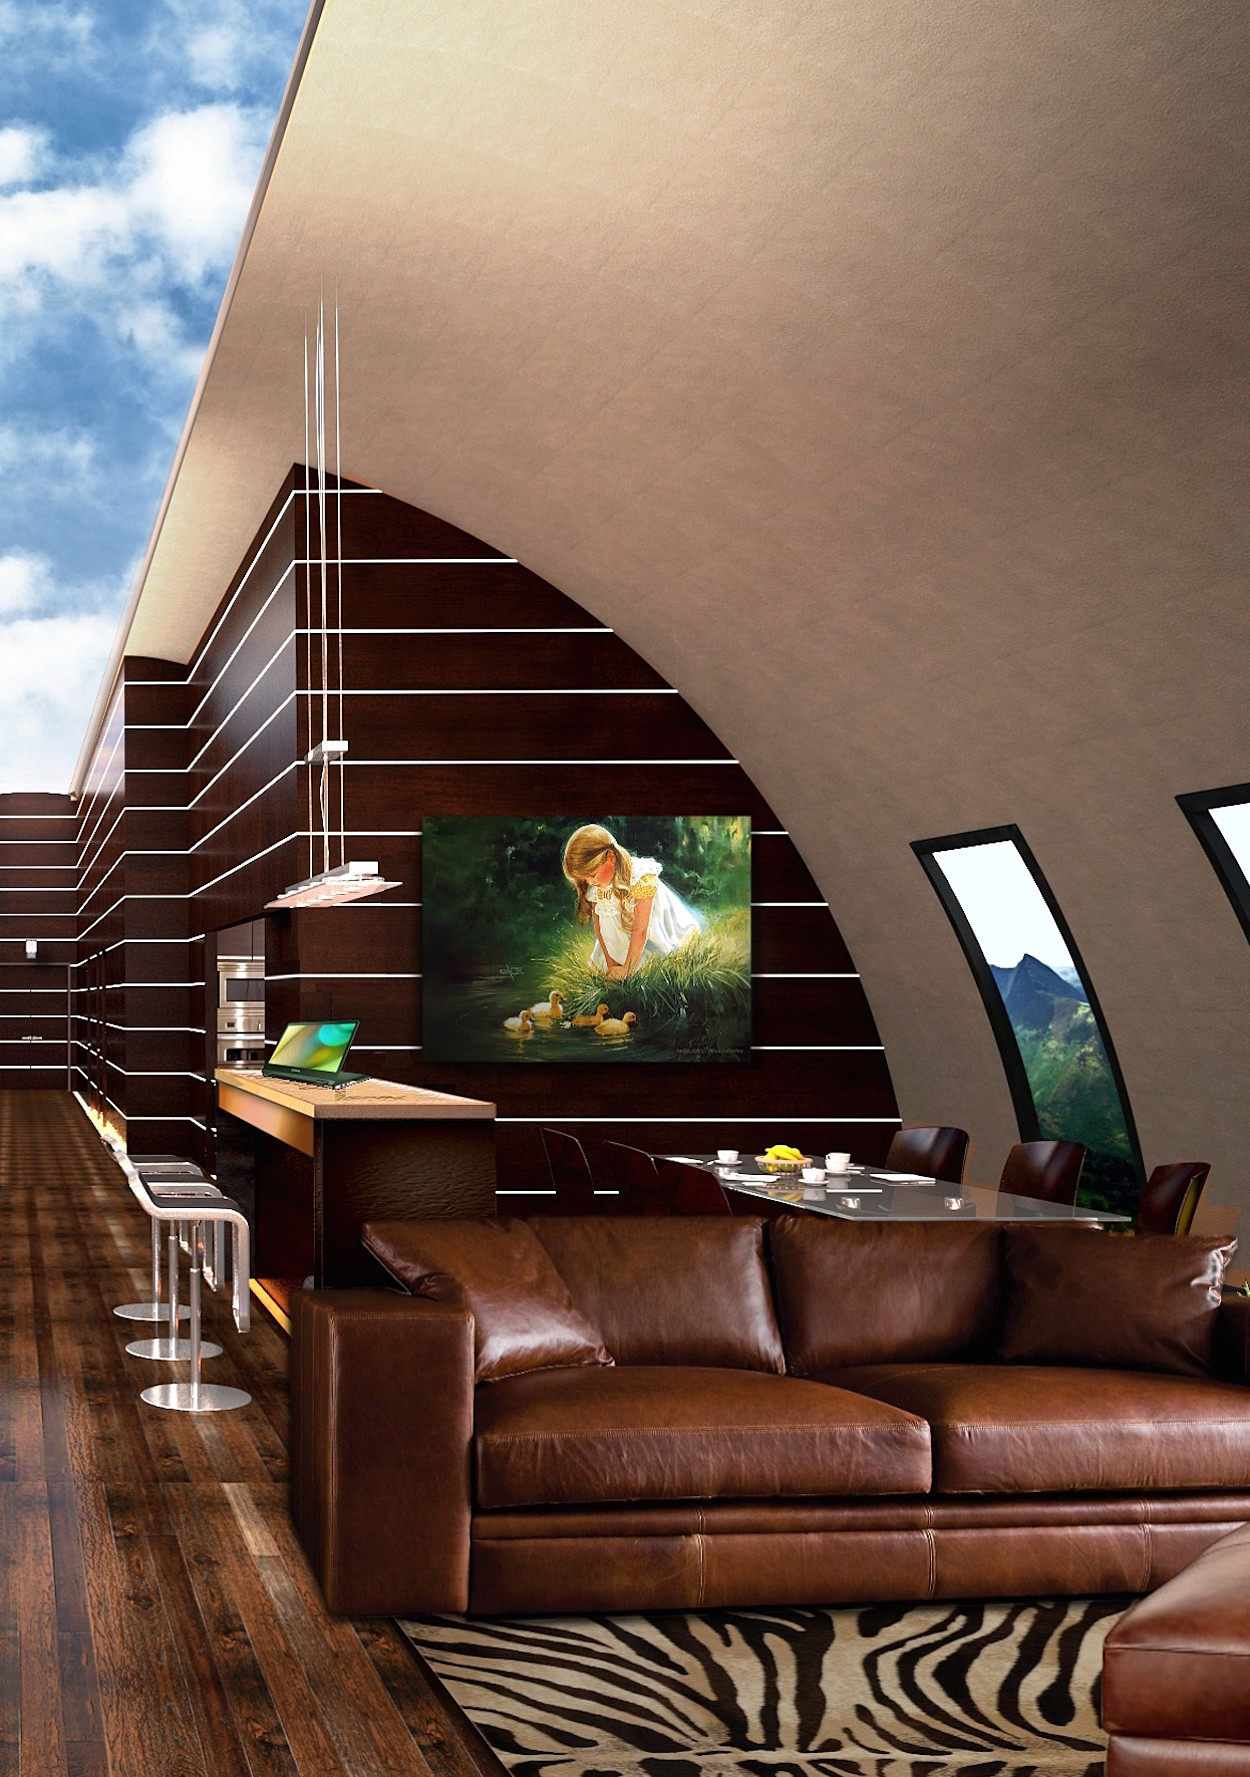 Ride Out The Apocalypse In A Luxury Underground Bunker